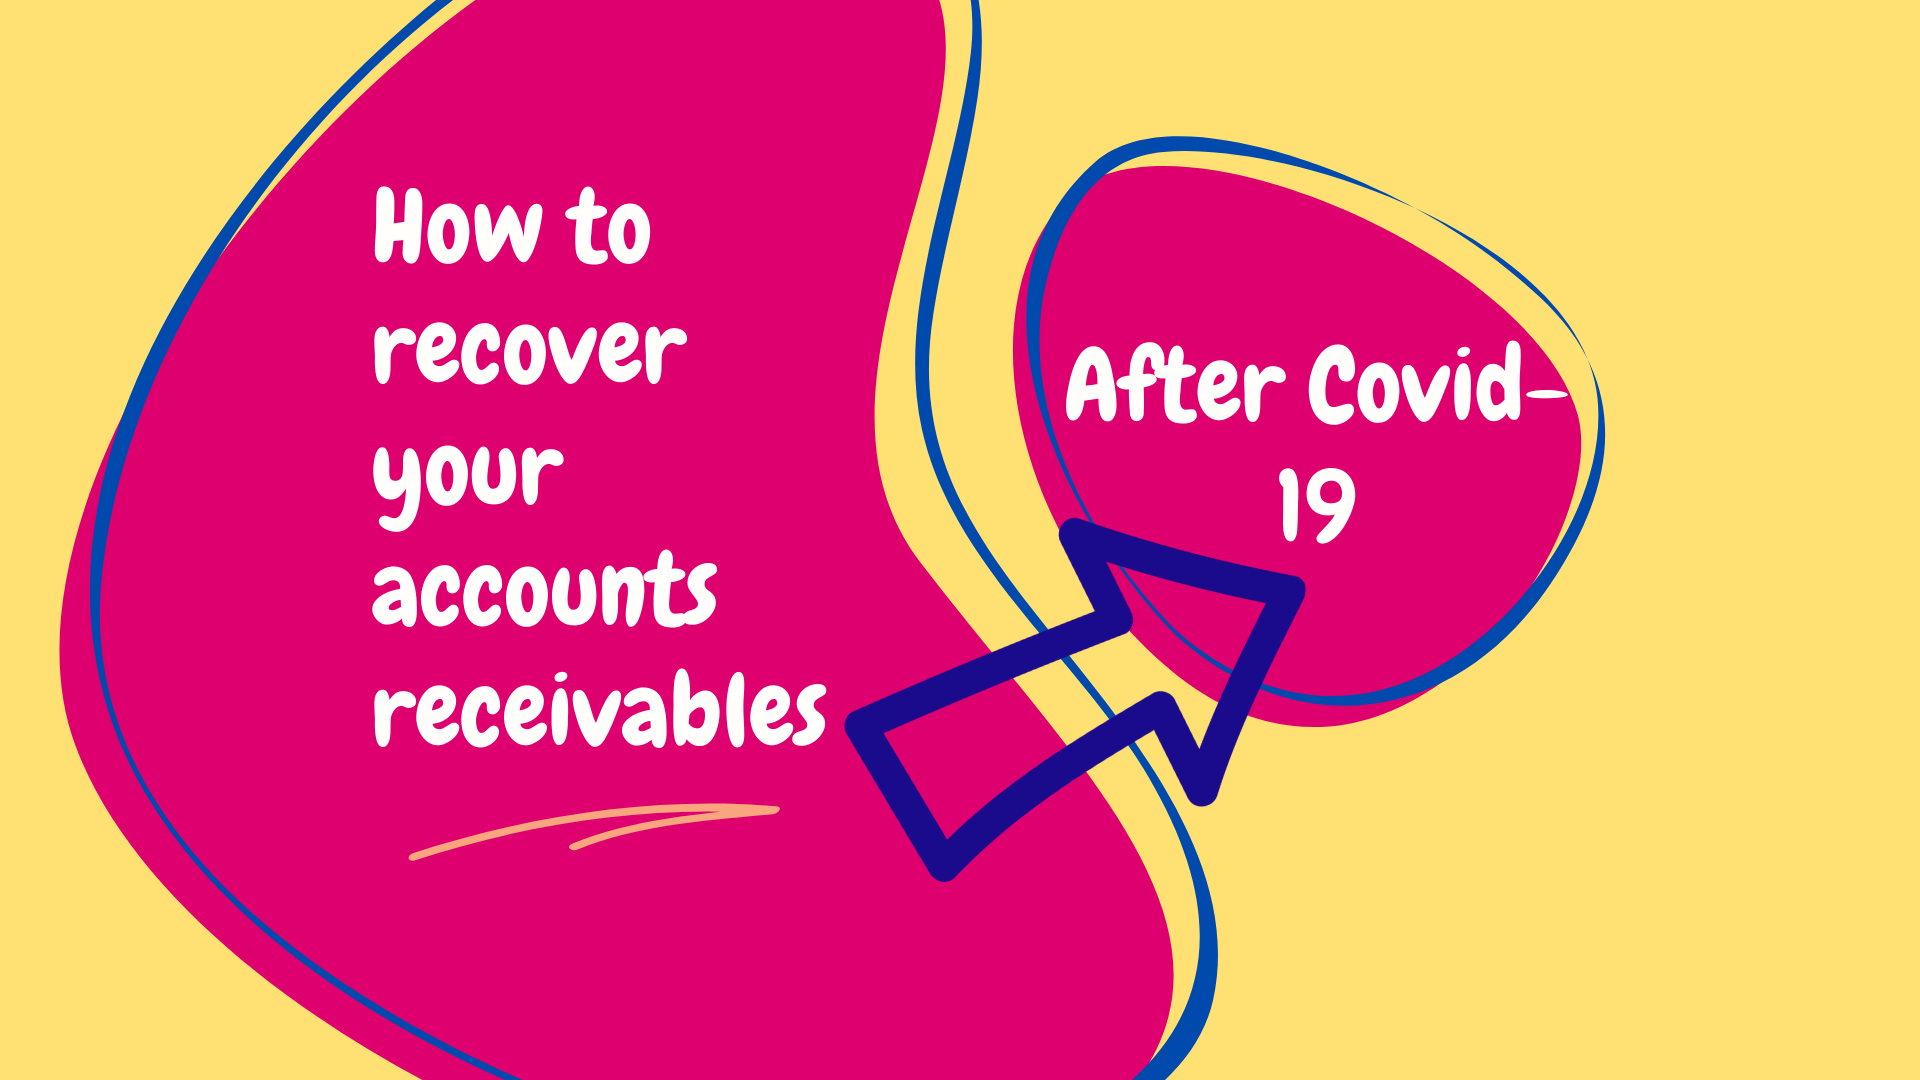 How to recover your accounts receivables